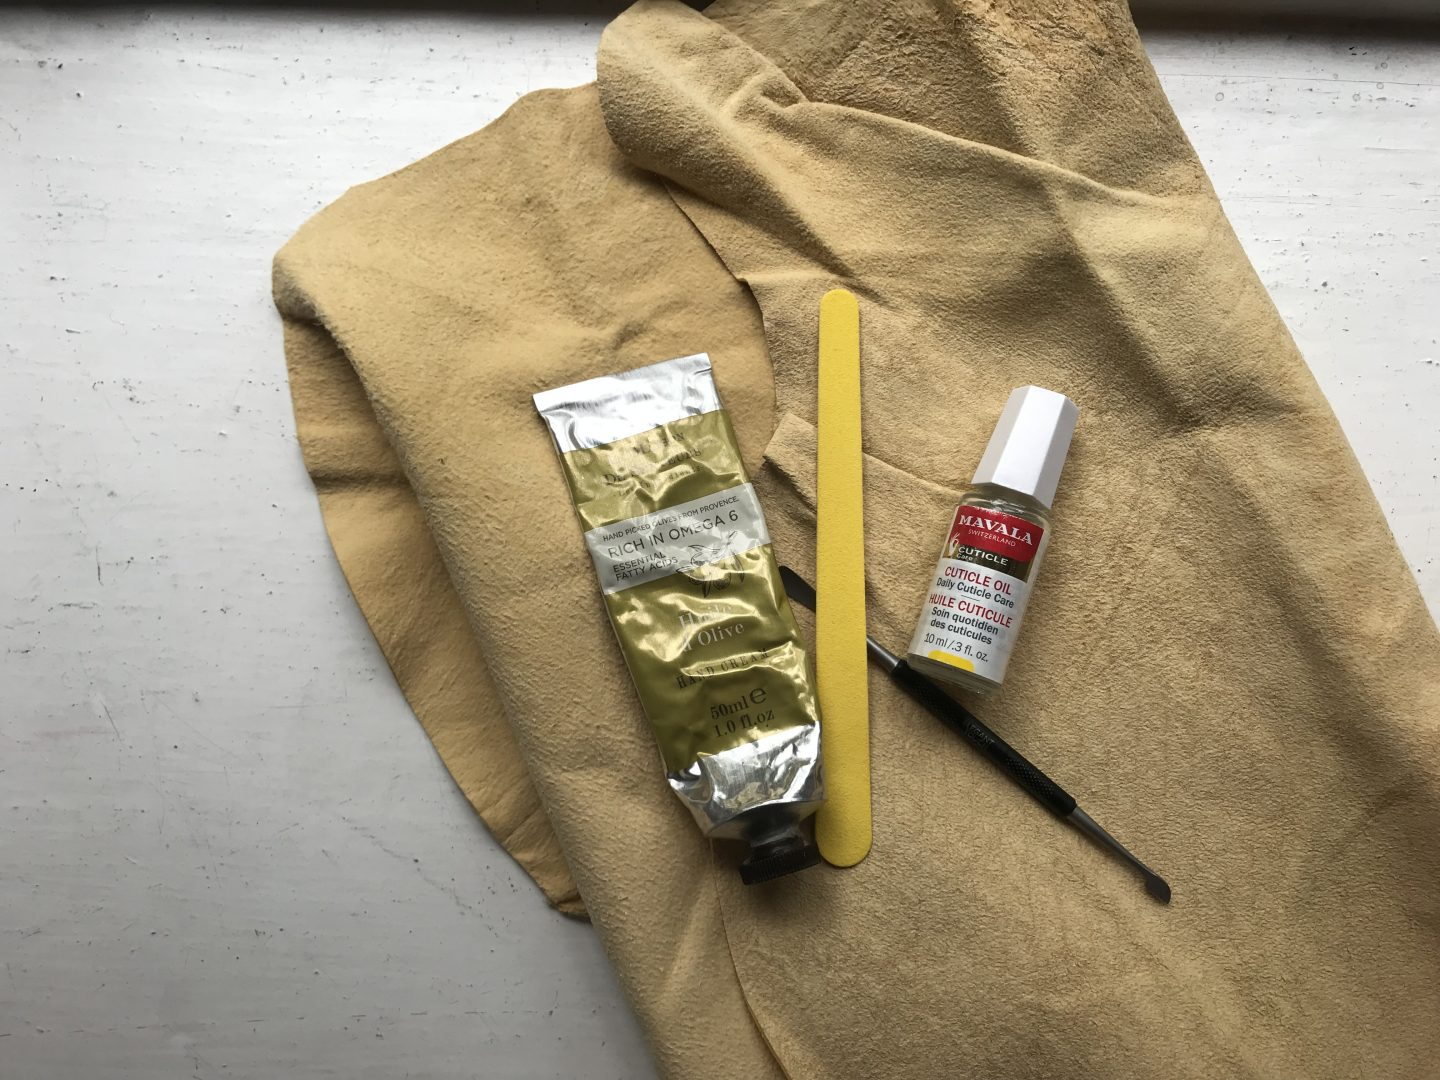 Healthy Nail Kit including file, cuticle oil and chamois leather